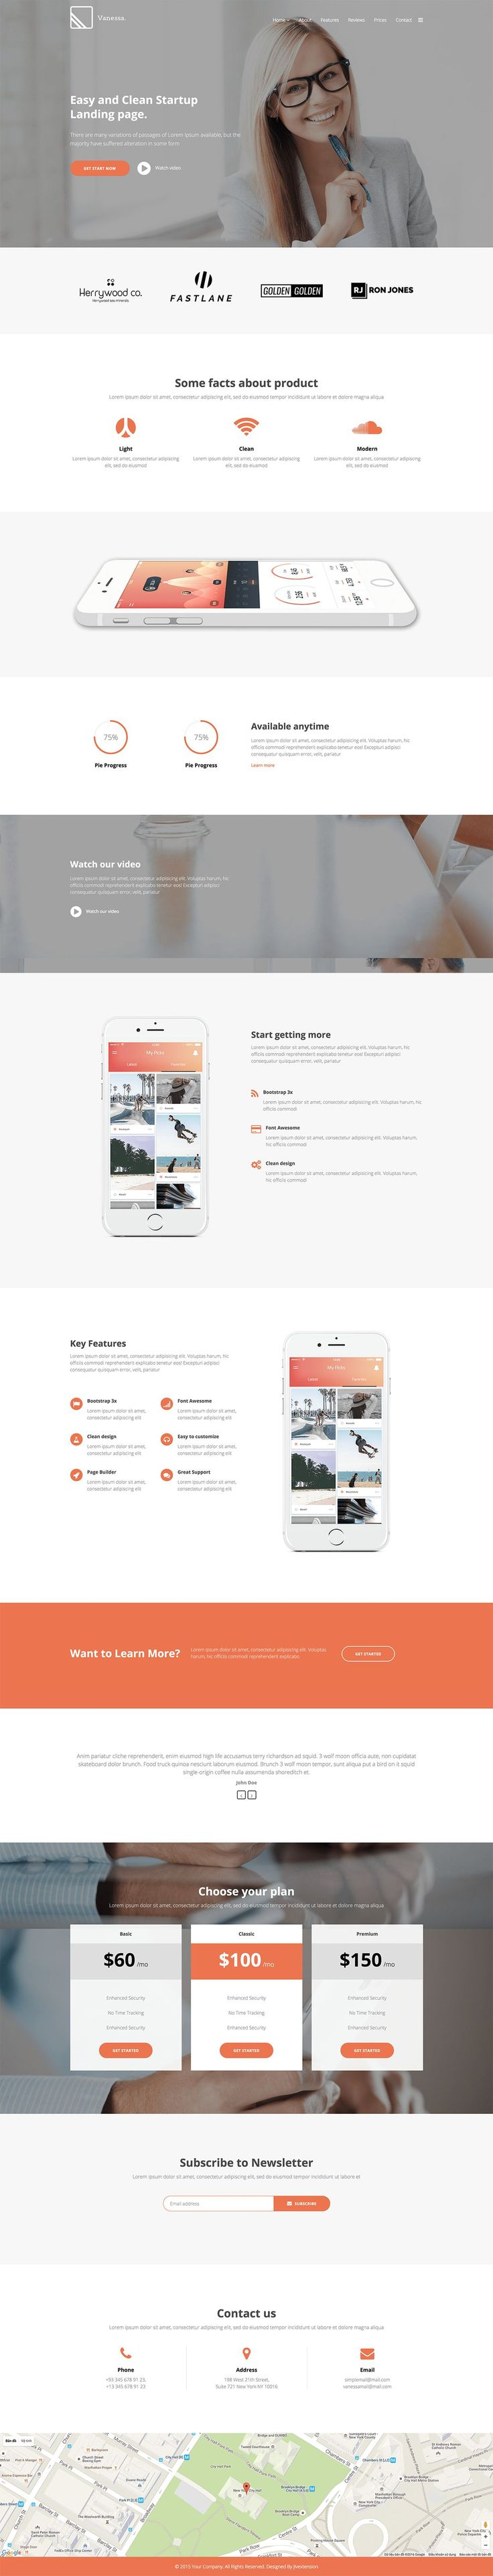 'Vanessa' is a long-scrolling One Page Joomla template suited for a clean landing page. The responsive template could be used quite well to promote your new app or website. Sections include big image/slide/video intro, feature infographics, pricing tables, newsletter signup, testimonial slider and nice big Google Map footer. Great to see another One Pager in the Joomla template category. Está farto de procurar por templates WordPress? Fizemos um E-Book GRATUITO com OS 150 MELHORES TEMPLATES…